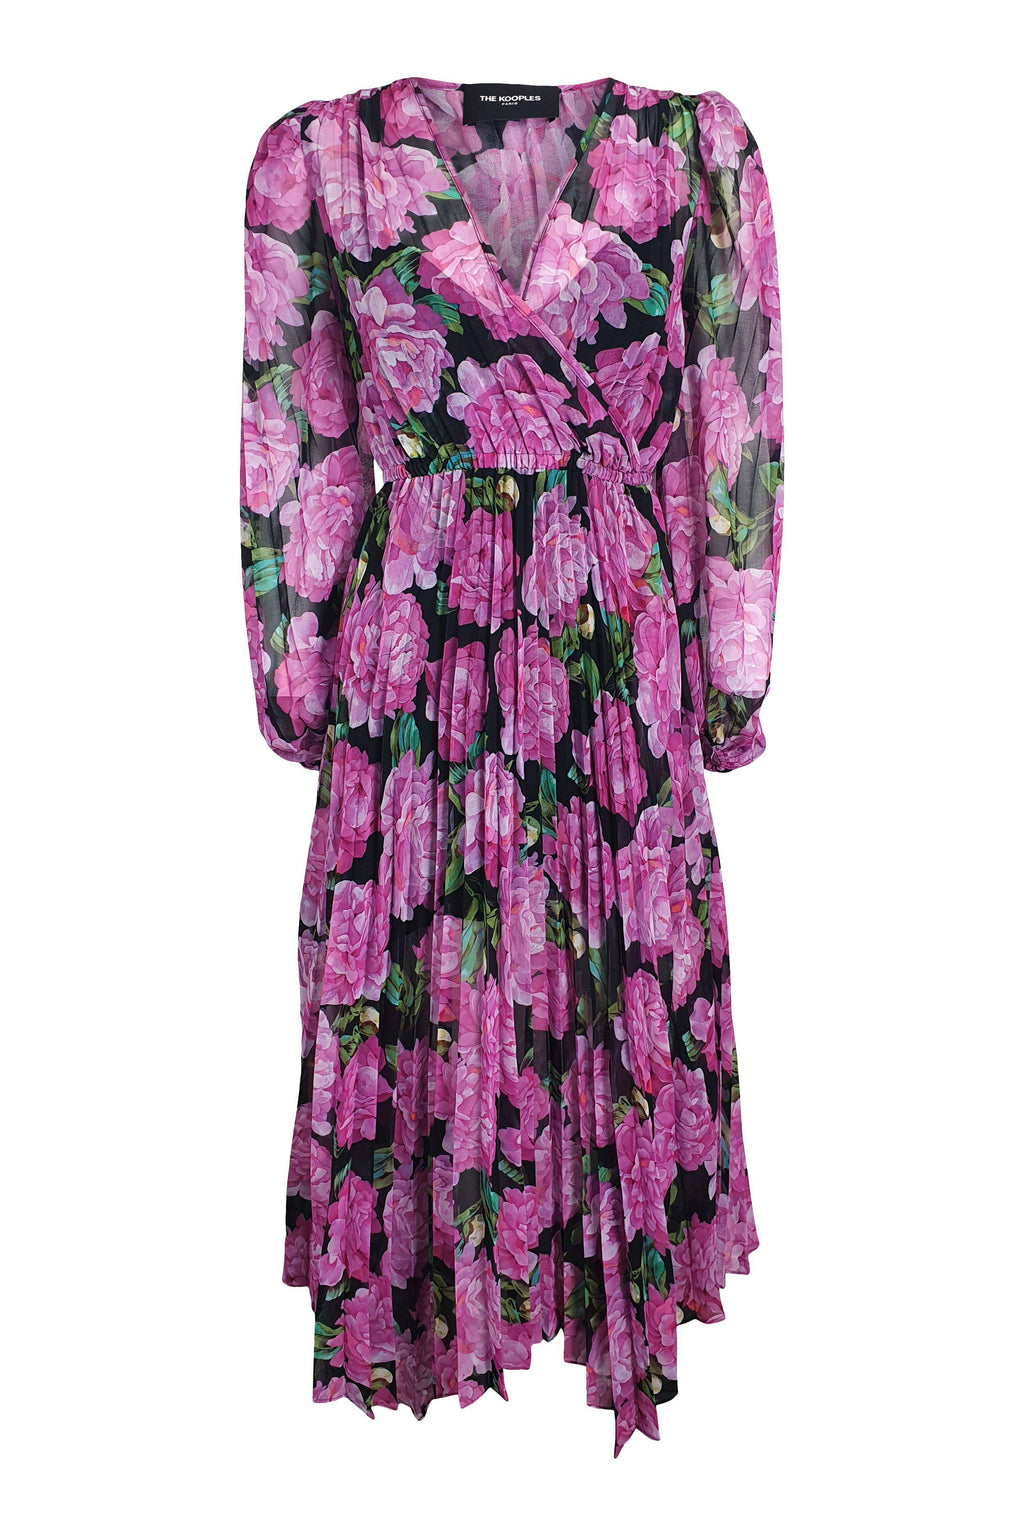 THE KOOPLES Pink Winter Peonies Midi Dress (1 | UK 10 | EU 36)-The Freperie